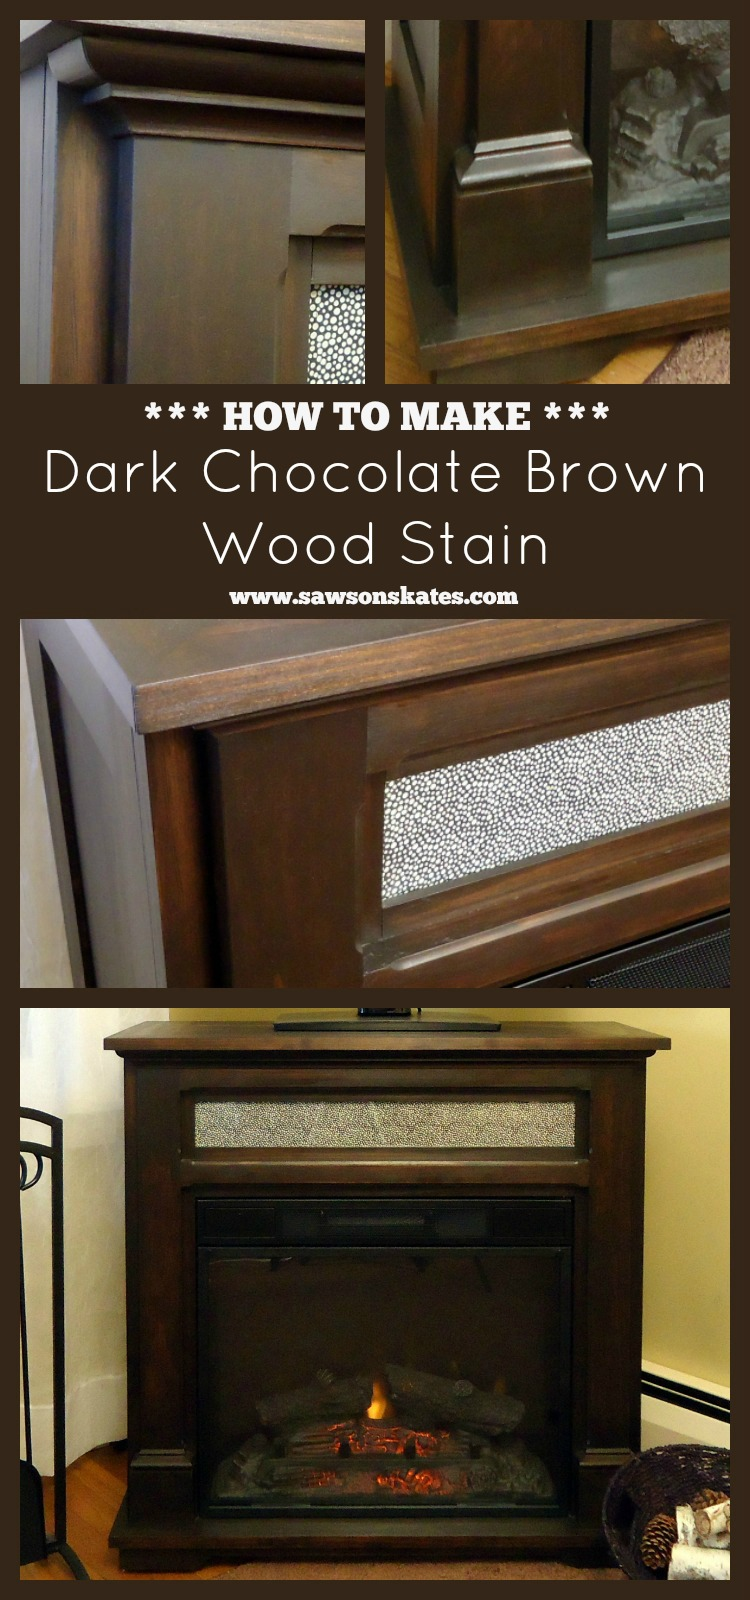 How To Make Dark Chocolate Brown Wood Stain   Www.sawsonskates.com